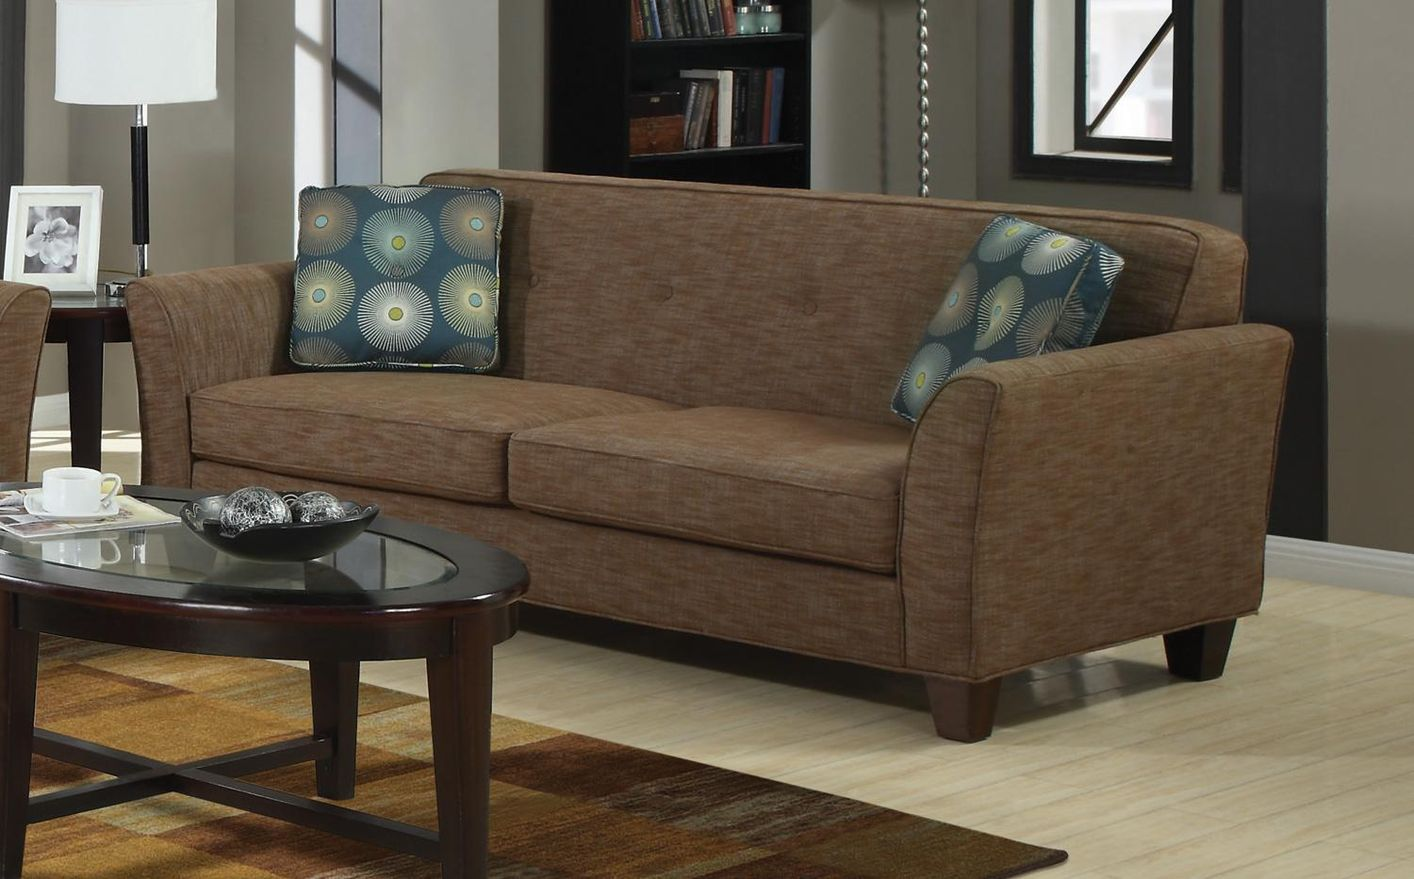 Lilian brown tweed sofa steal a sofa furniture outlet for Furniture 90036